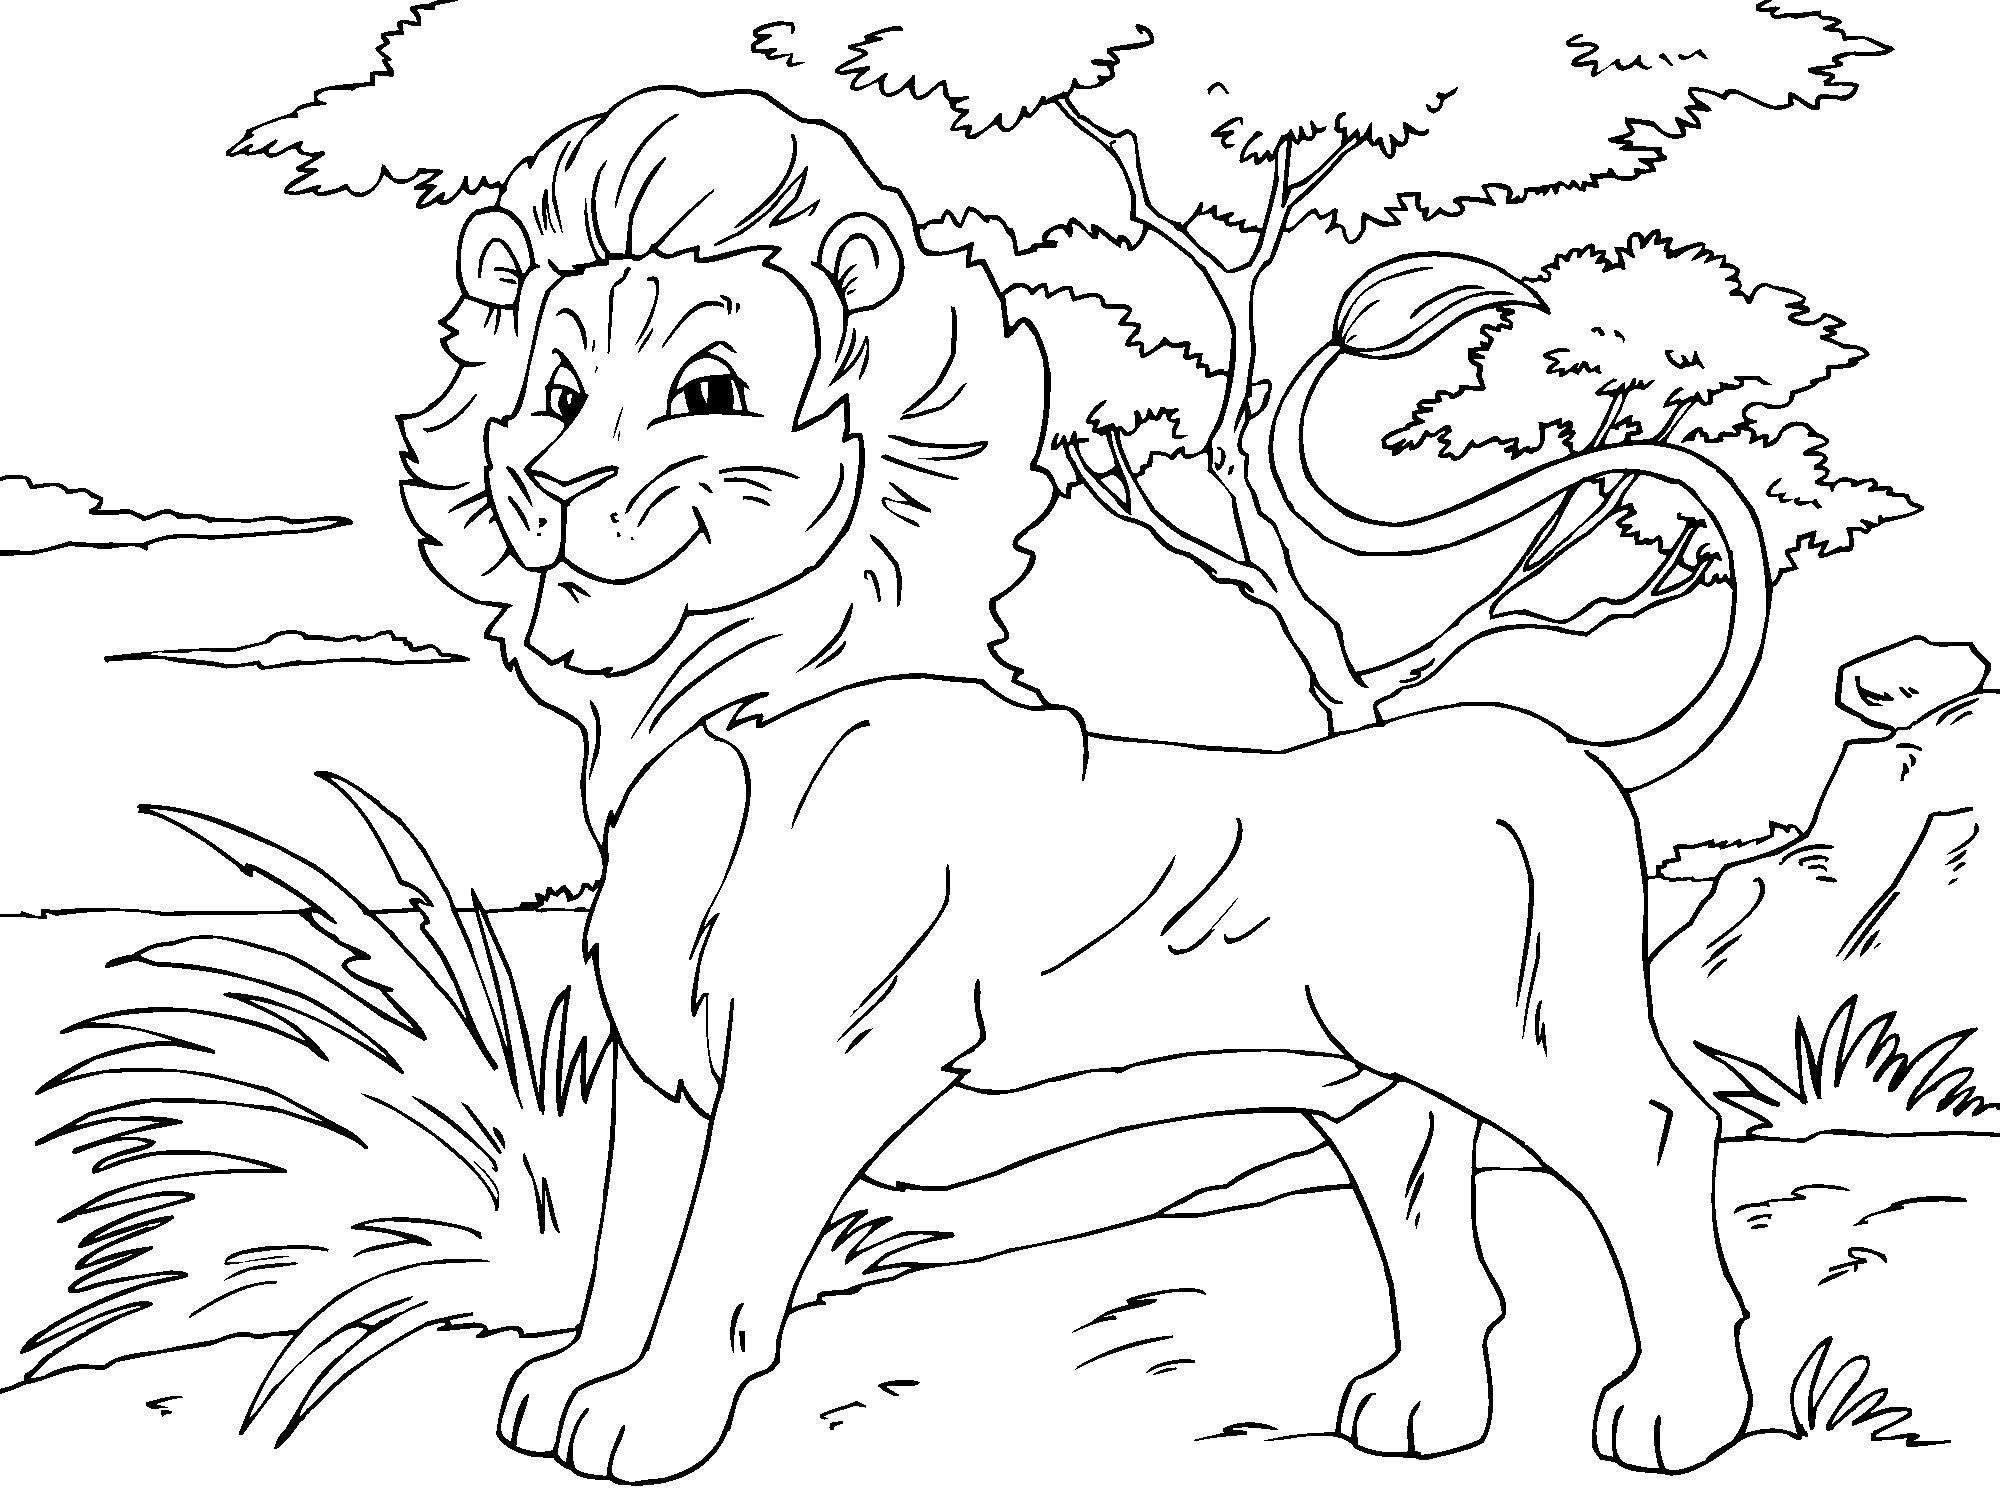 Coloring pages lion - Pictures Of Lion Coloring Pages